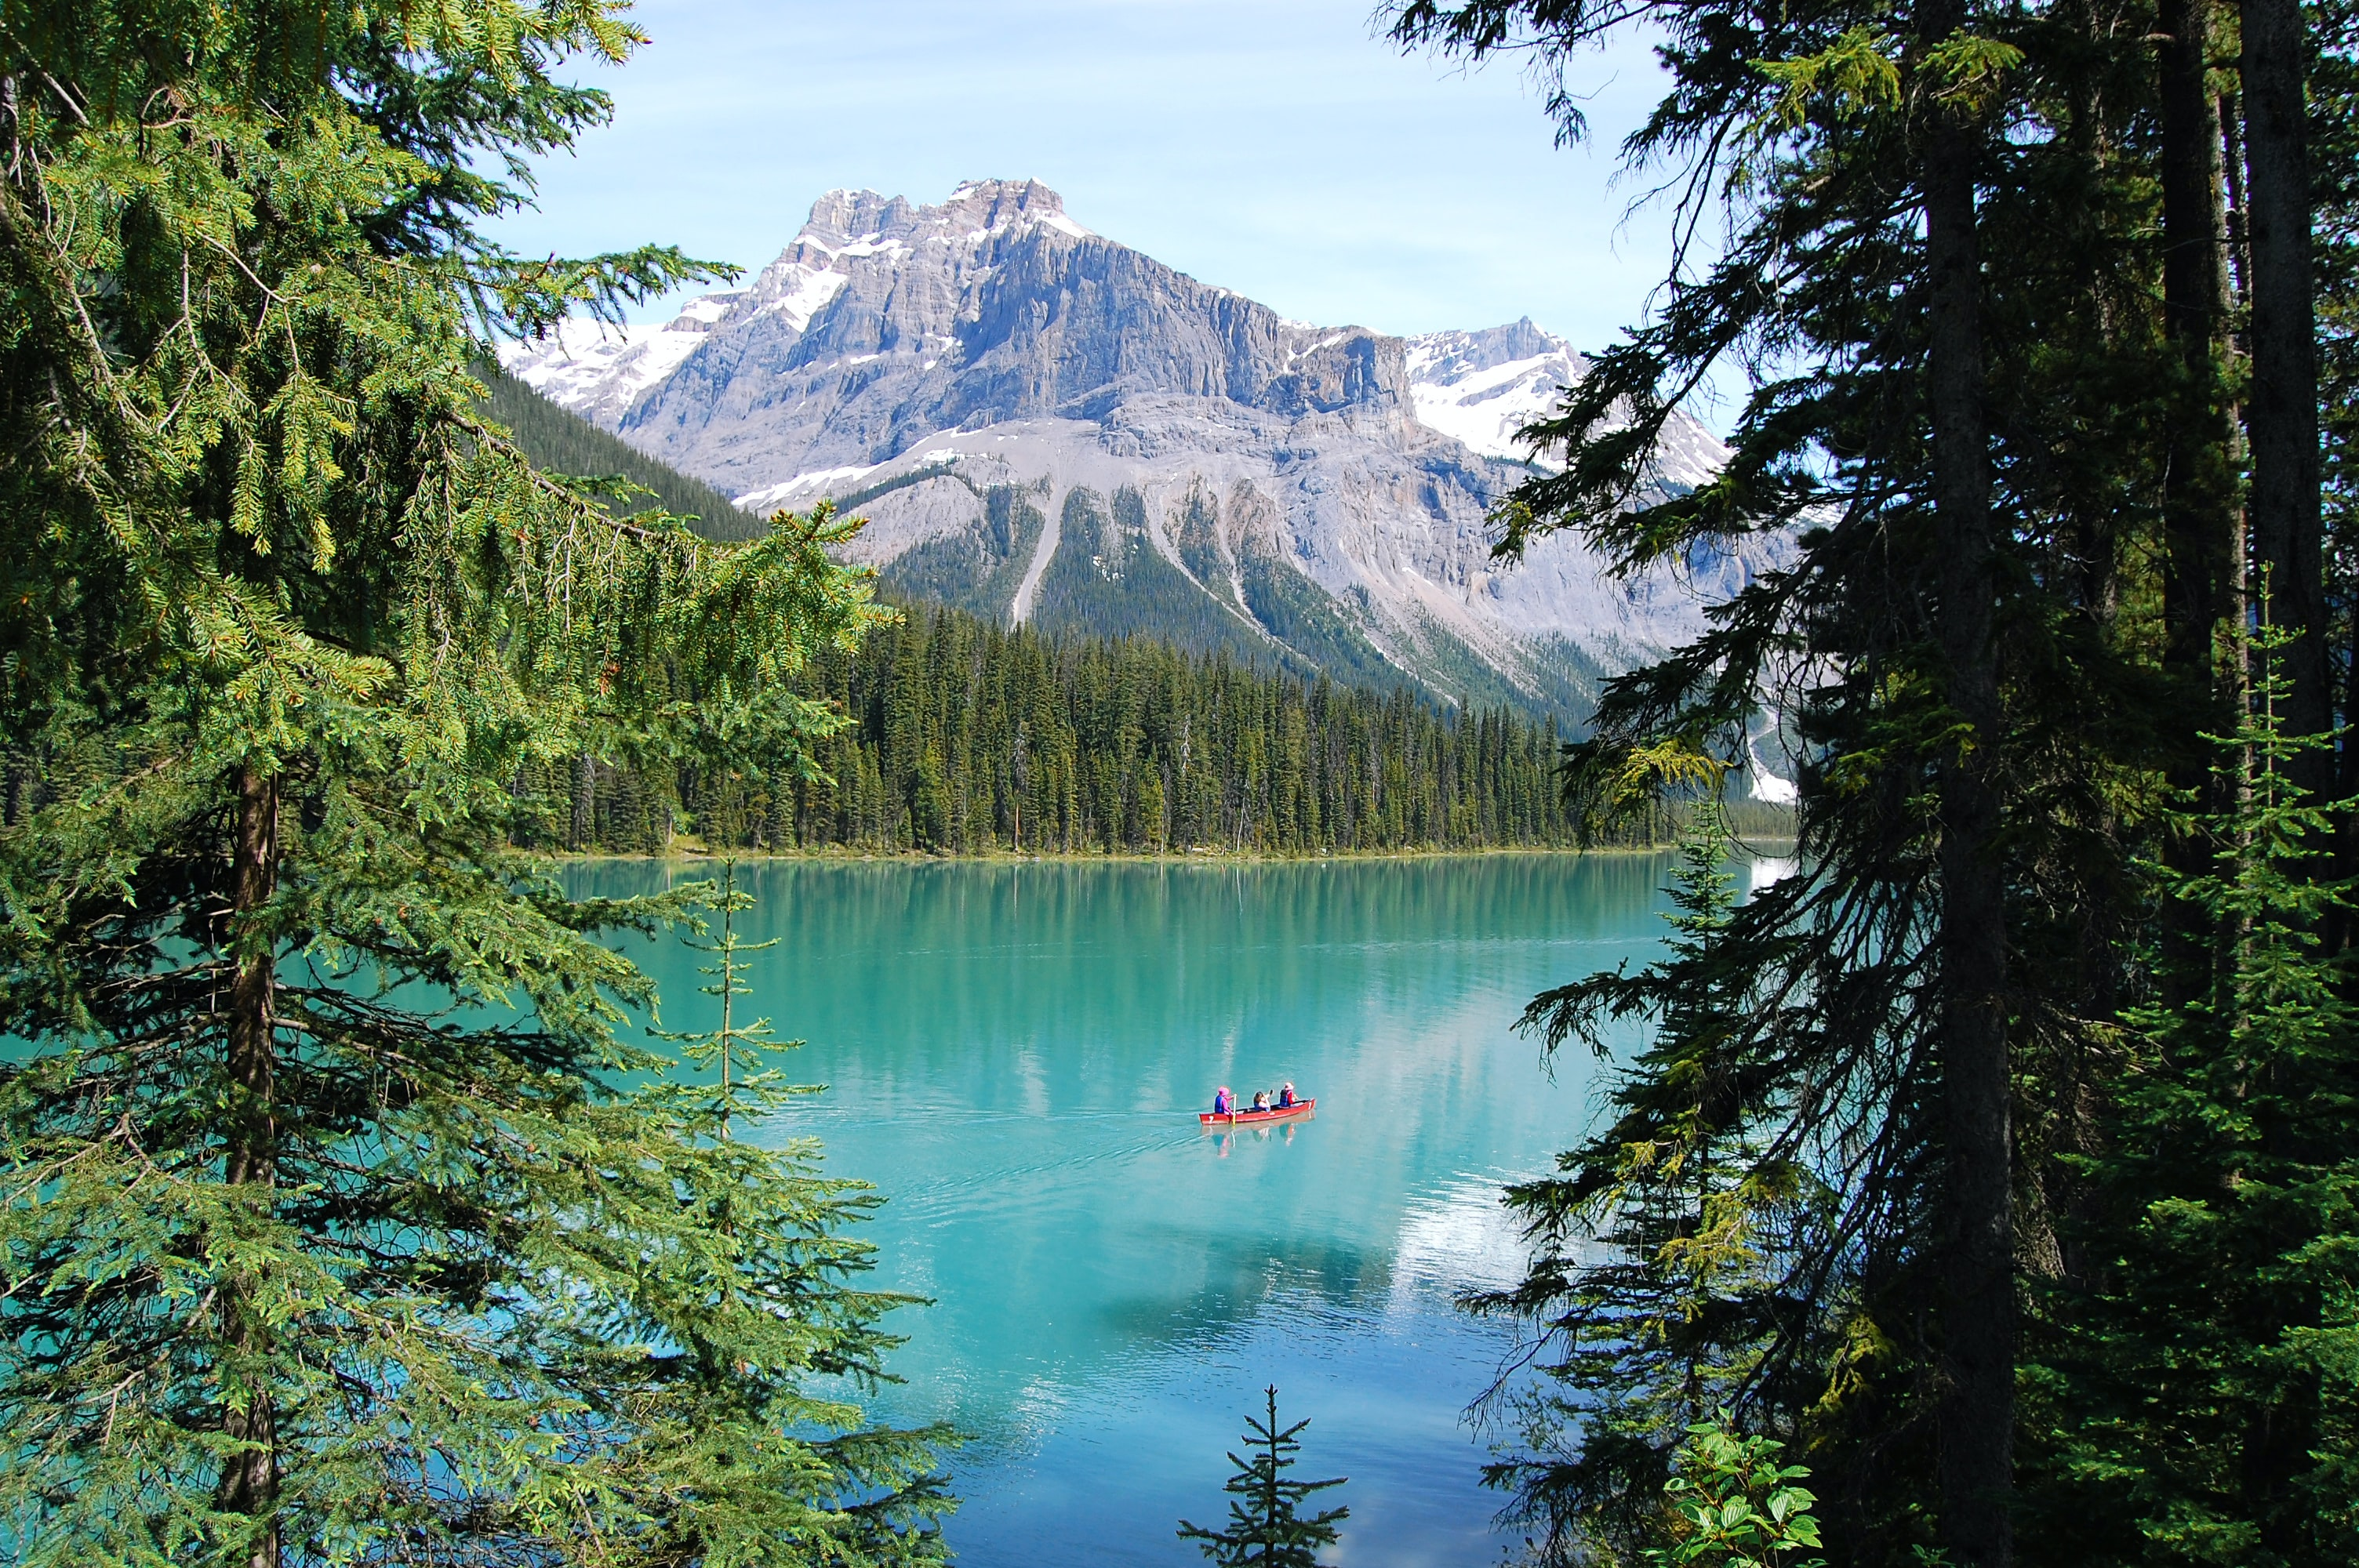 People in a red canoe on Emerald Lake with a tall mountain in the background